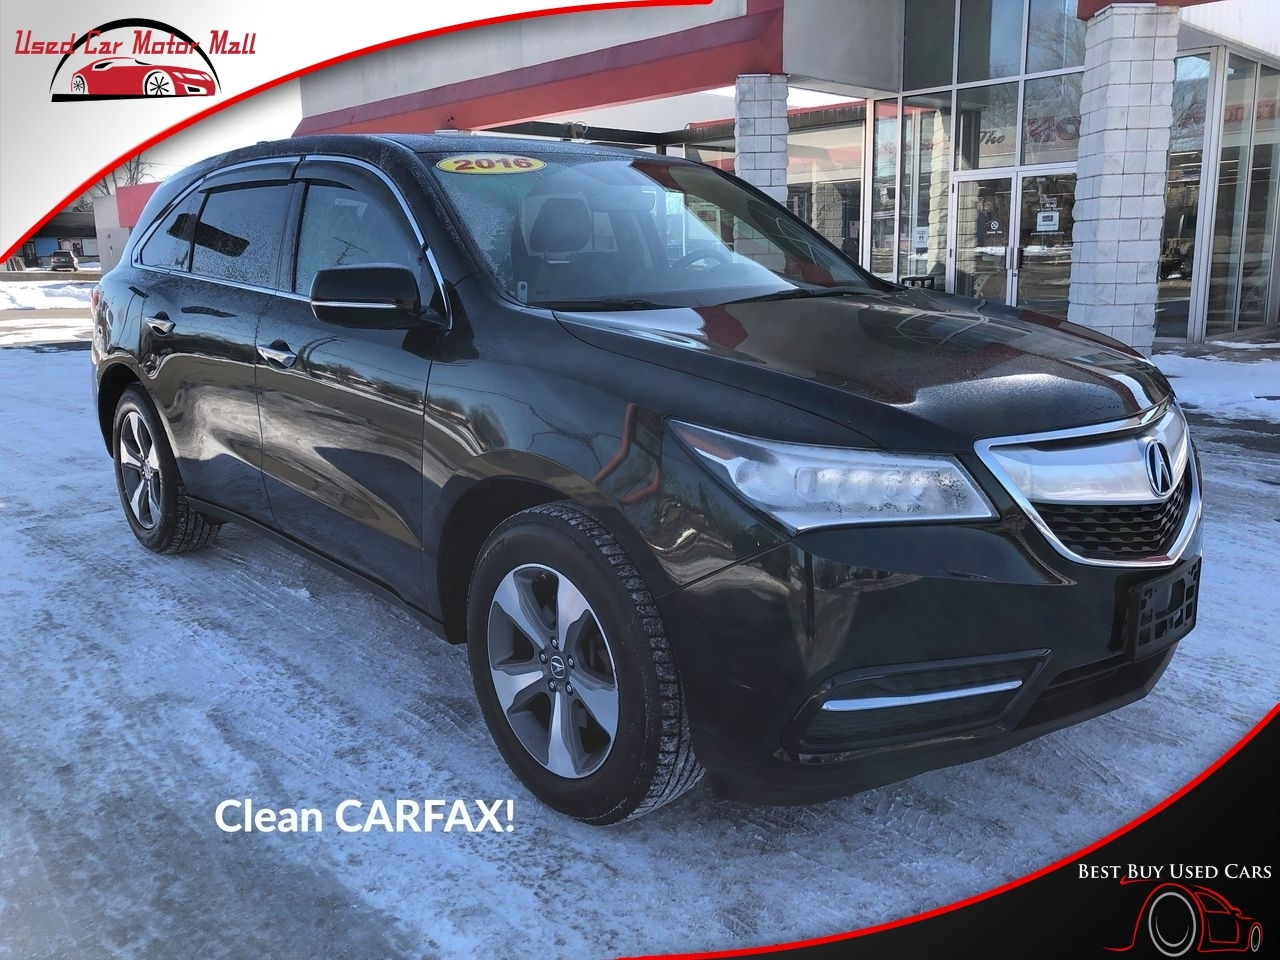 2017 Acura MDX SH-AWD w/ Technology Pkg, 036973, Photo 1